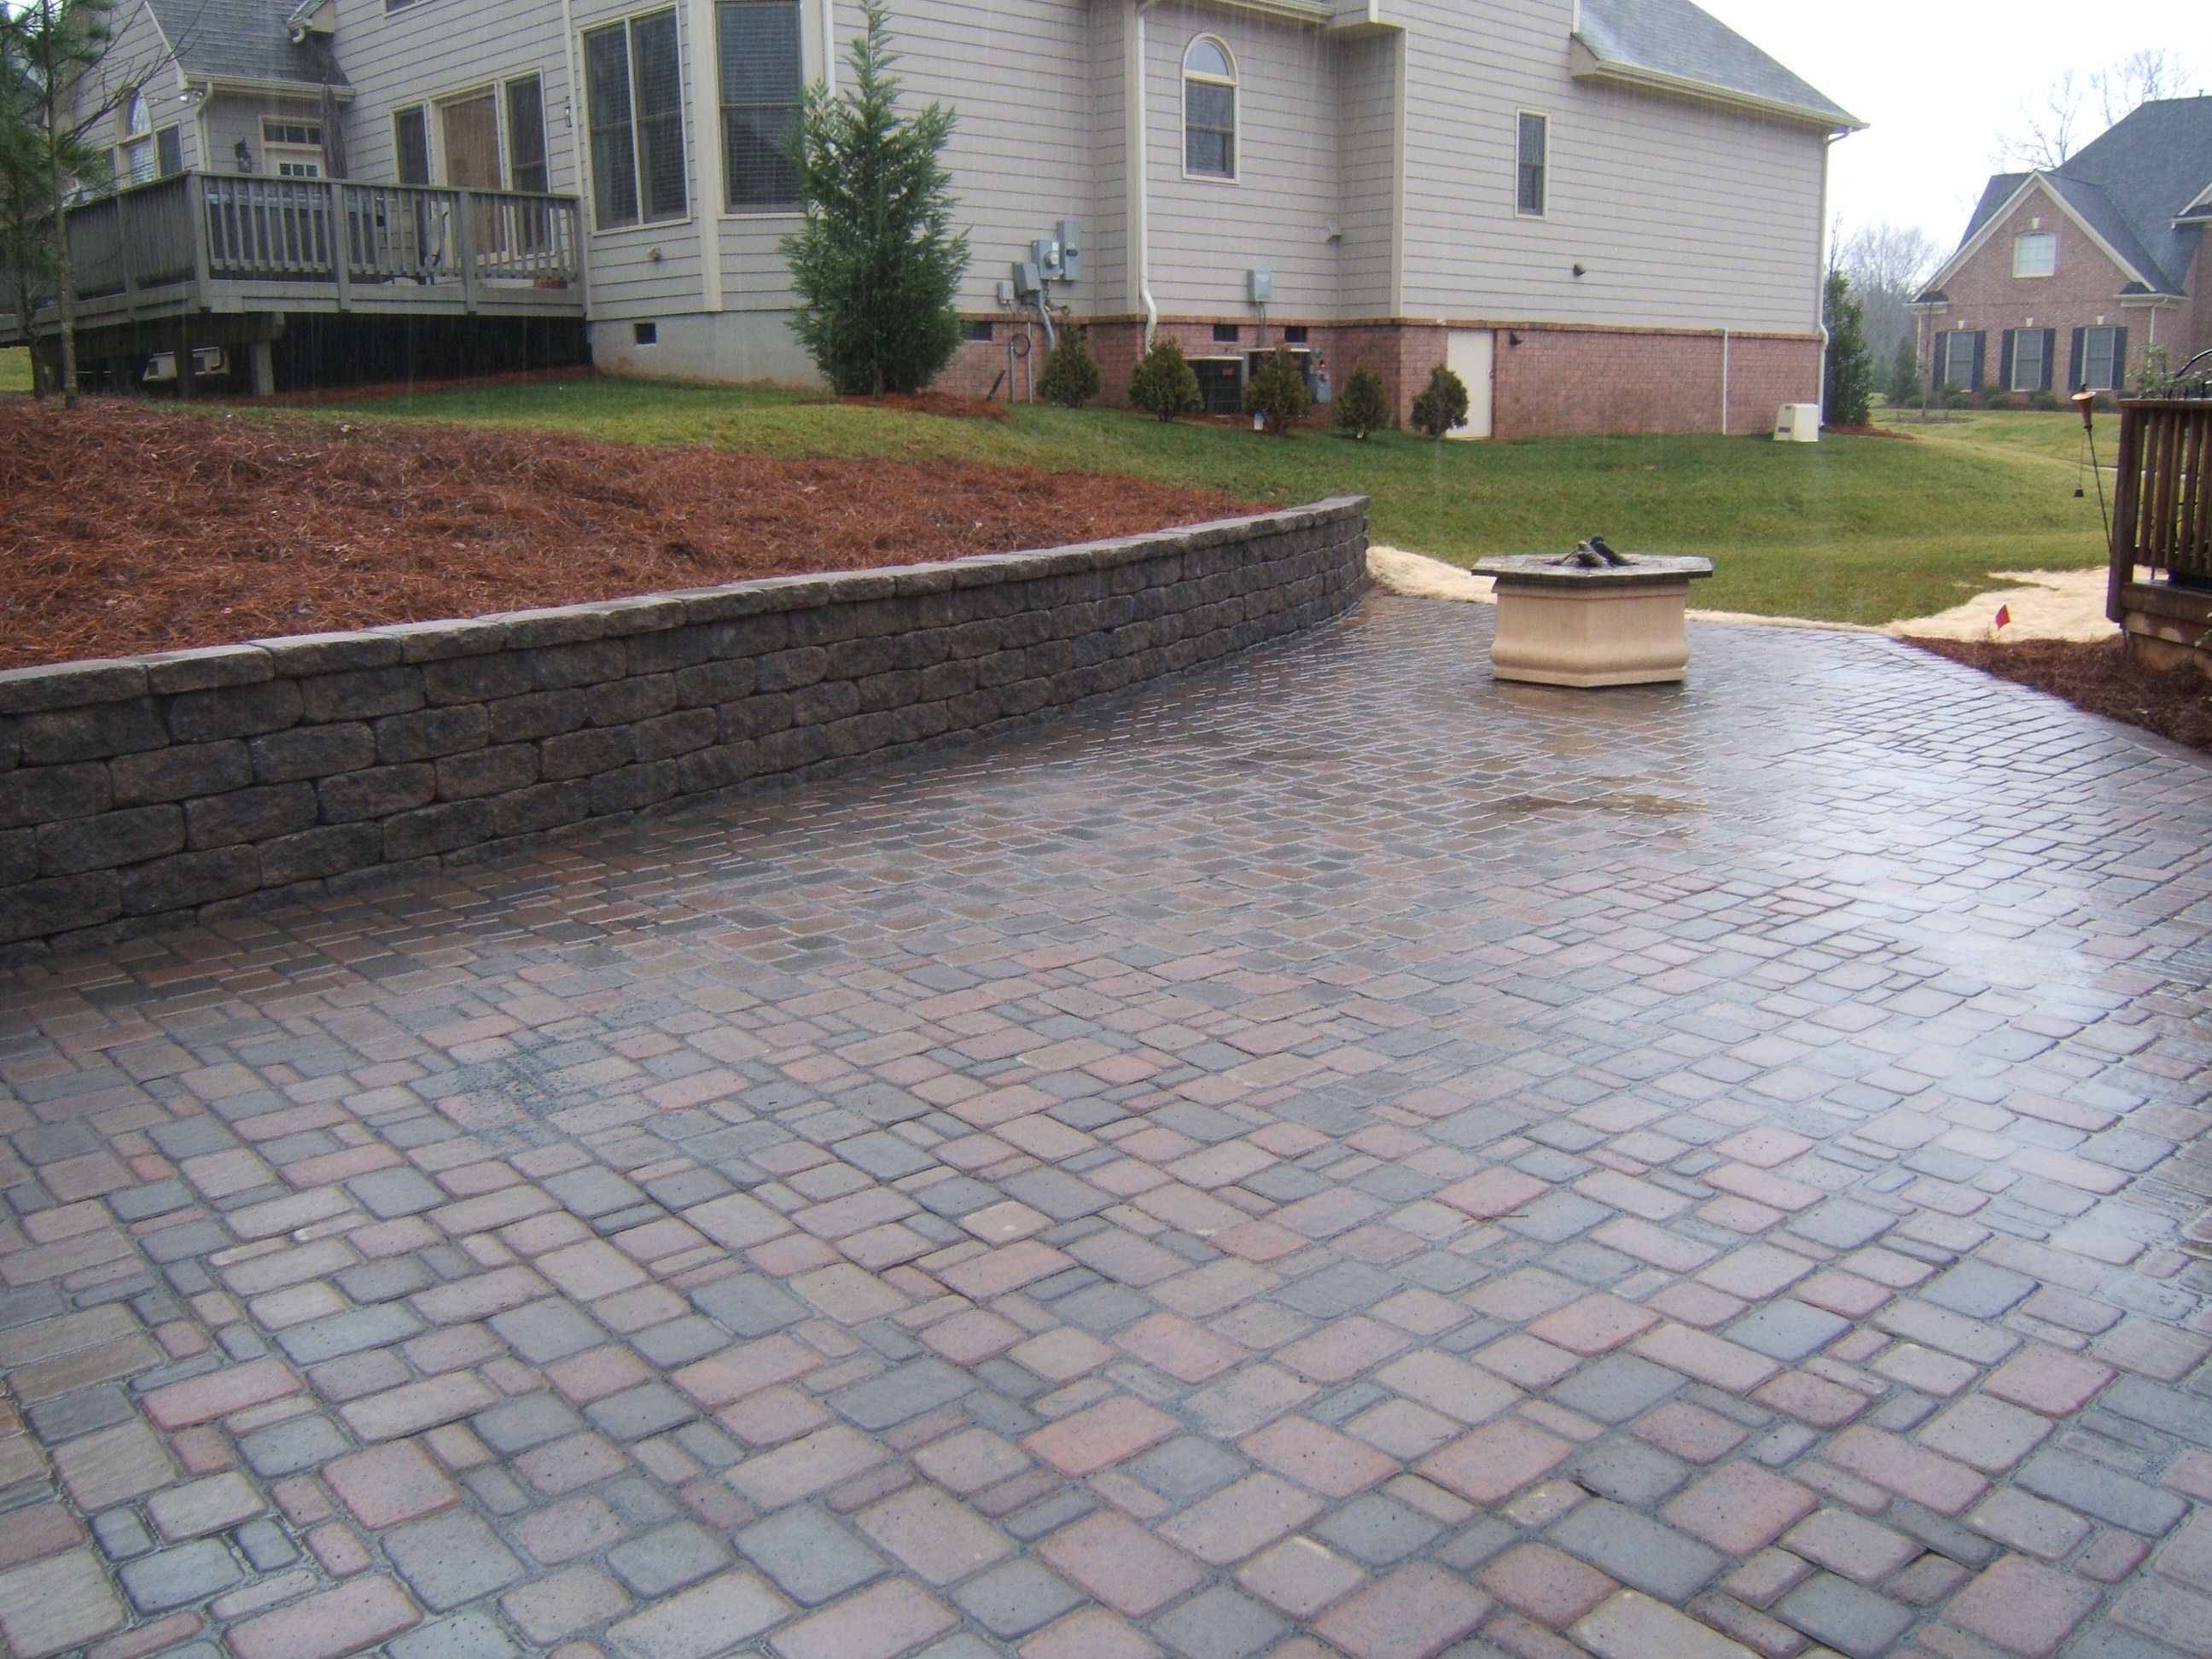 MORE PAVERS